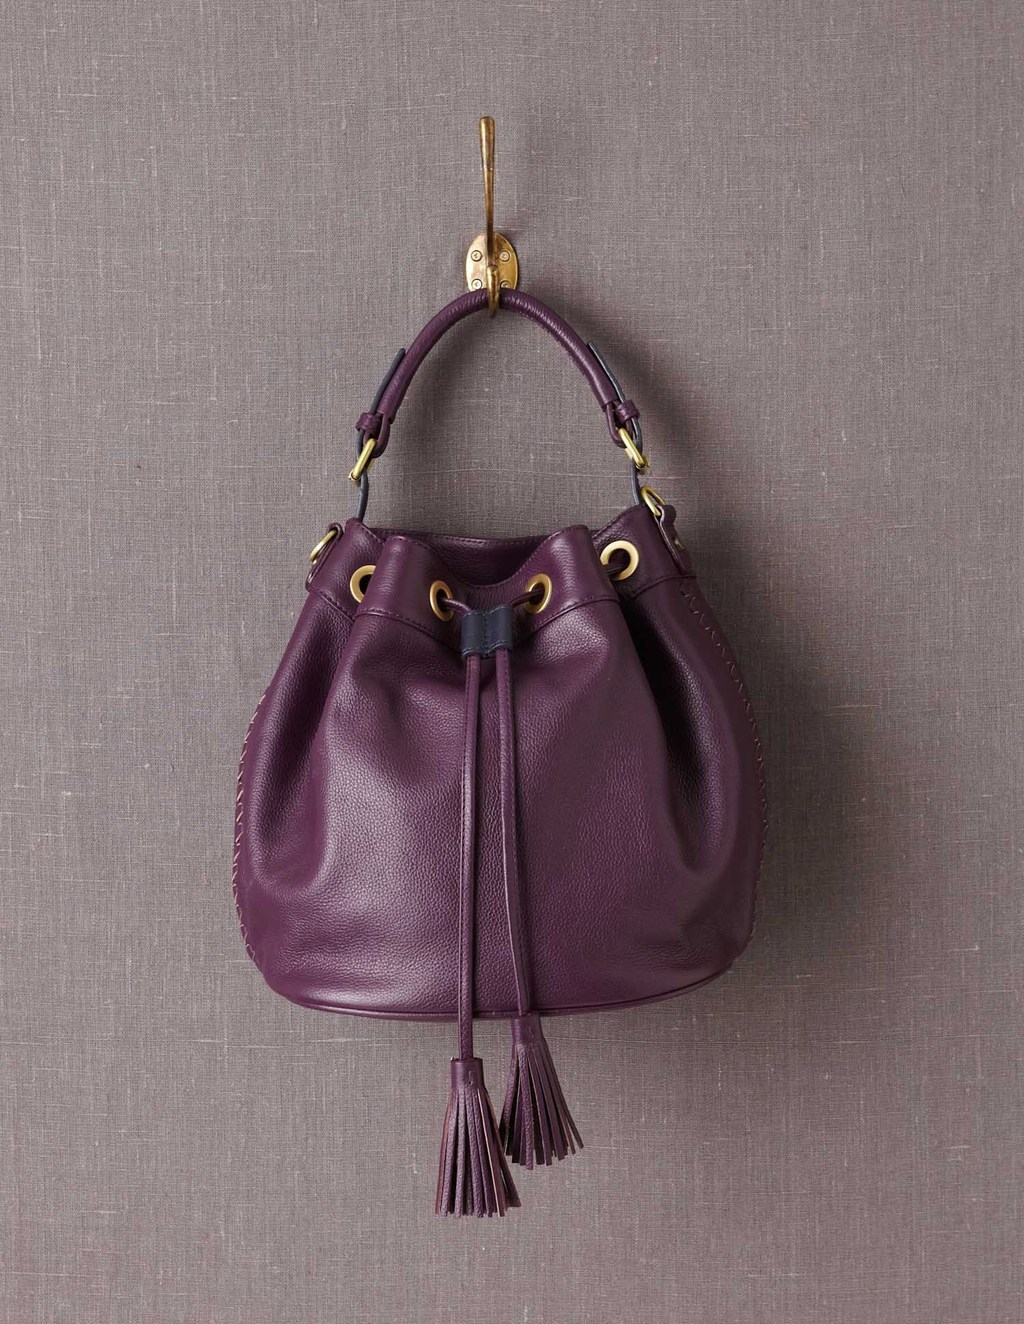 Leather Pouch Bag - predominant colour: aubergine; occasions: casual; style: onion bag; length: handle; size: standard; material: leather; embellishment: tassels; pattern: plain; finish: plain; season: a/w 2013